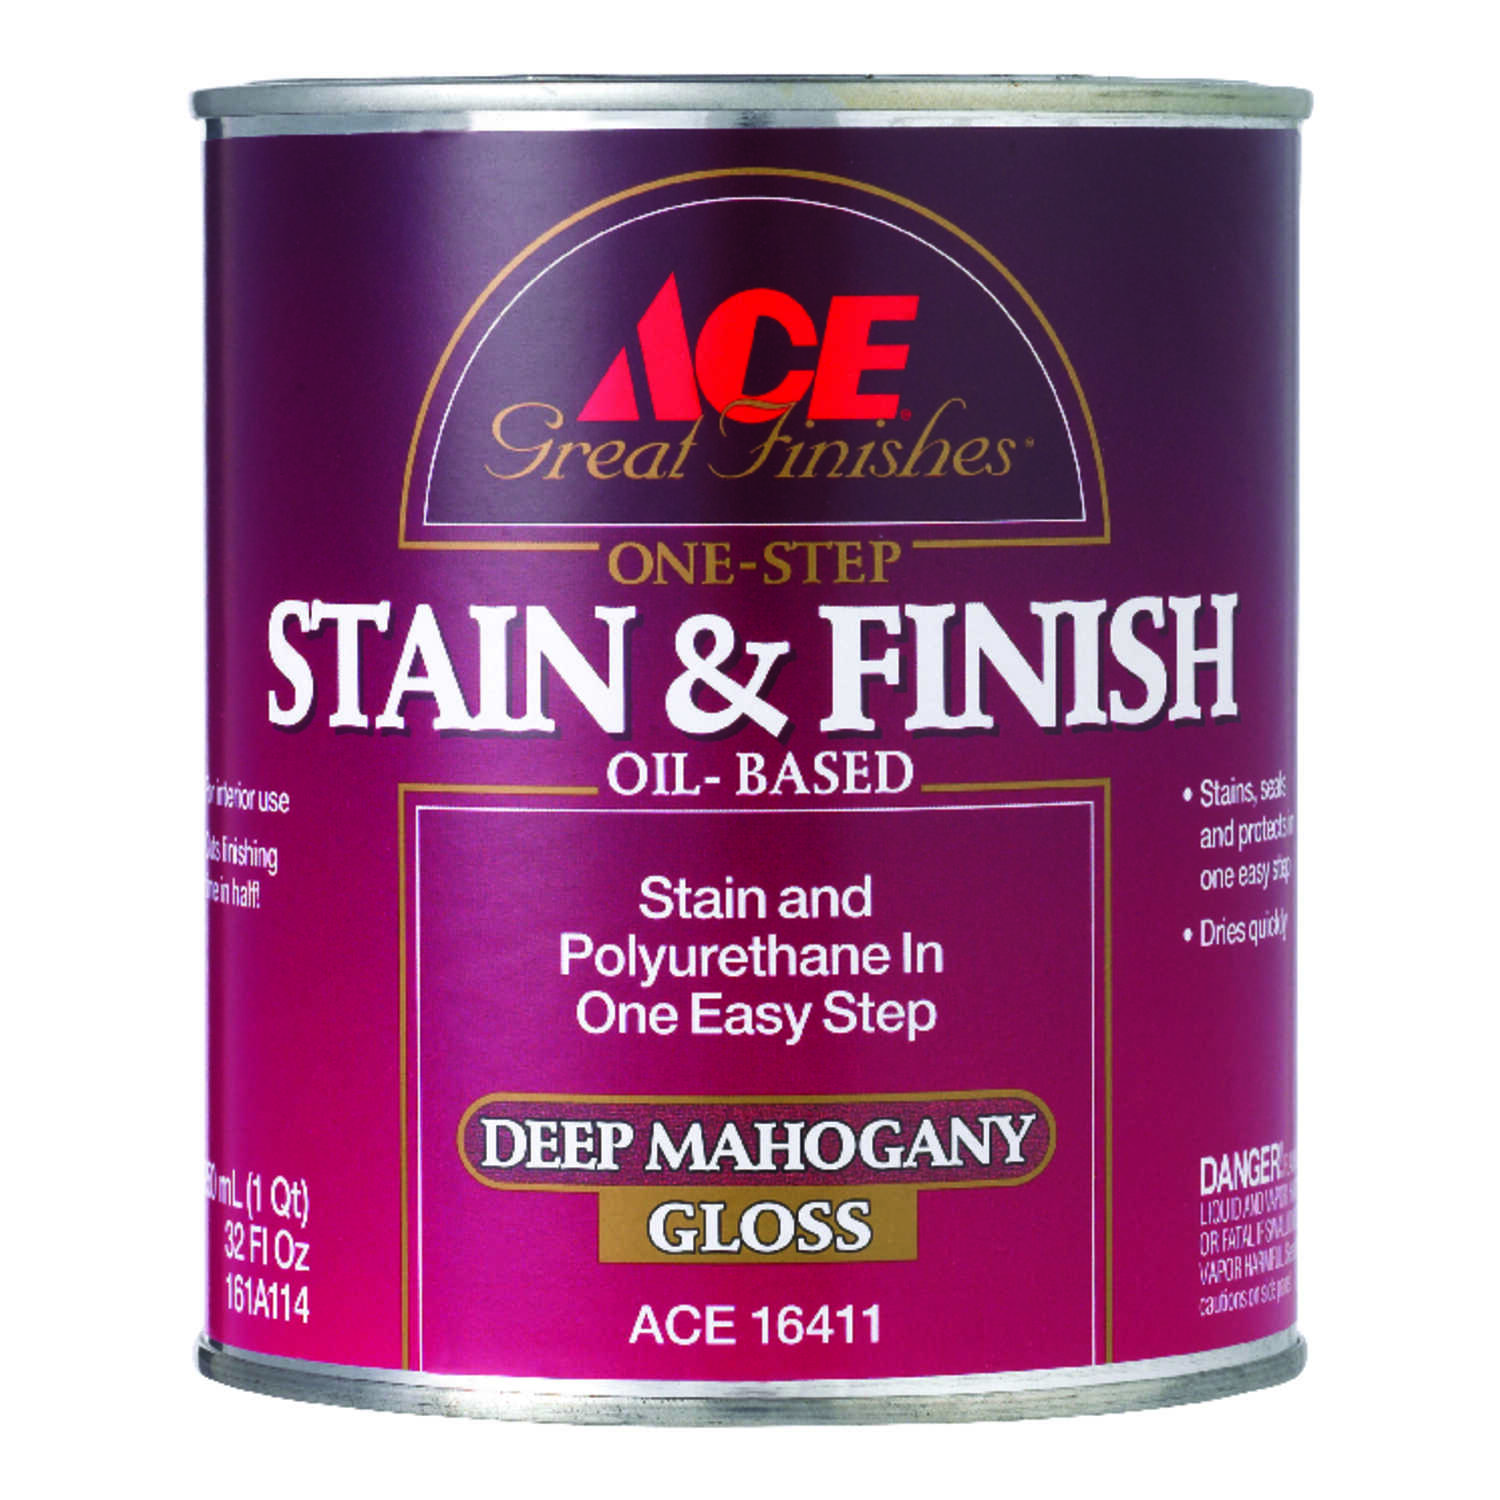 Ace  Great Finishes  Semi-Solid  Gloss  Deep Mahogany  Oil-Based  Oil  Wood Stain and Sealer  1 qt.